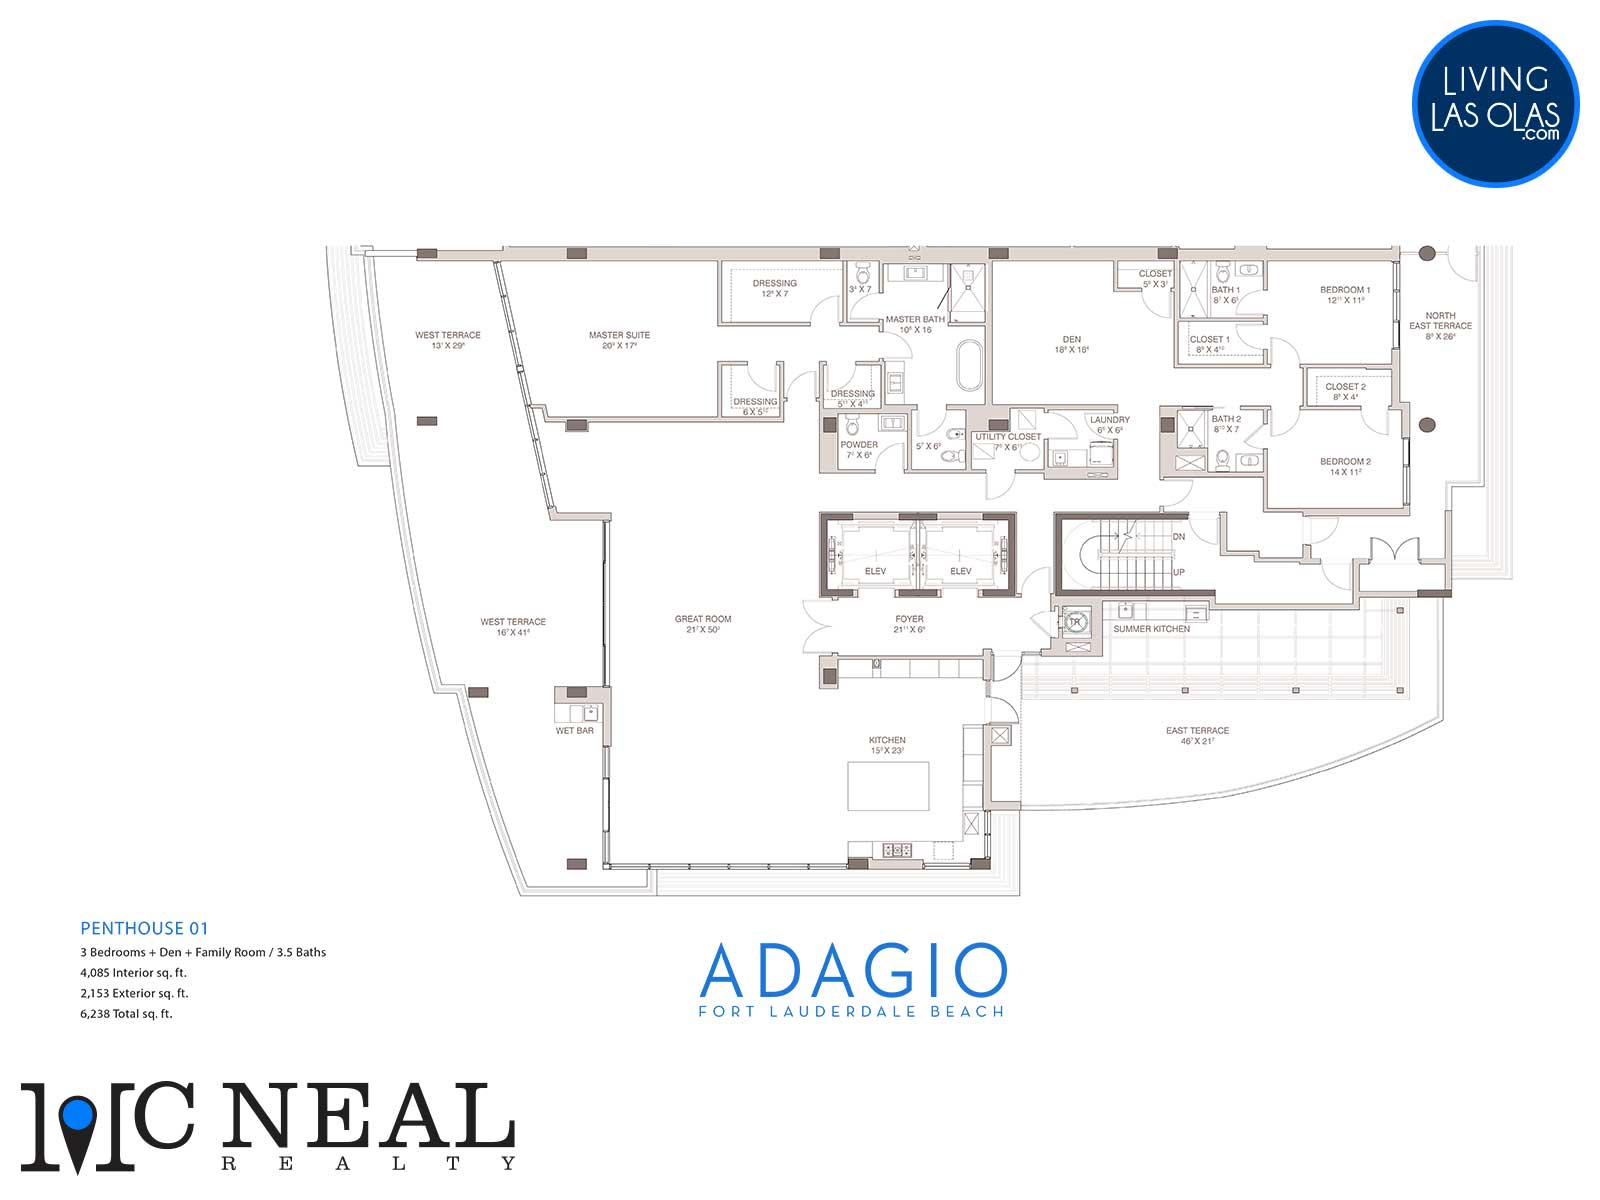 Adagio Fort Lauderdale Beach Condos Floor Plans Penthouse